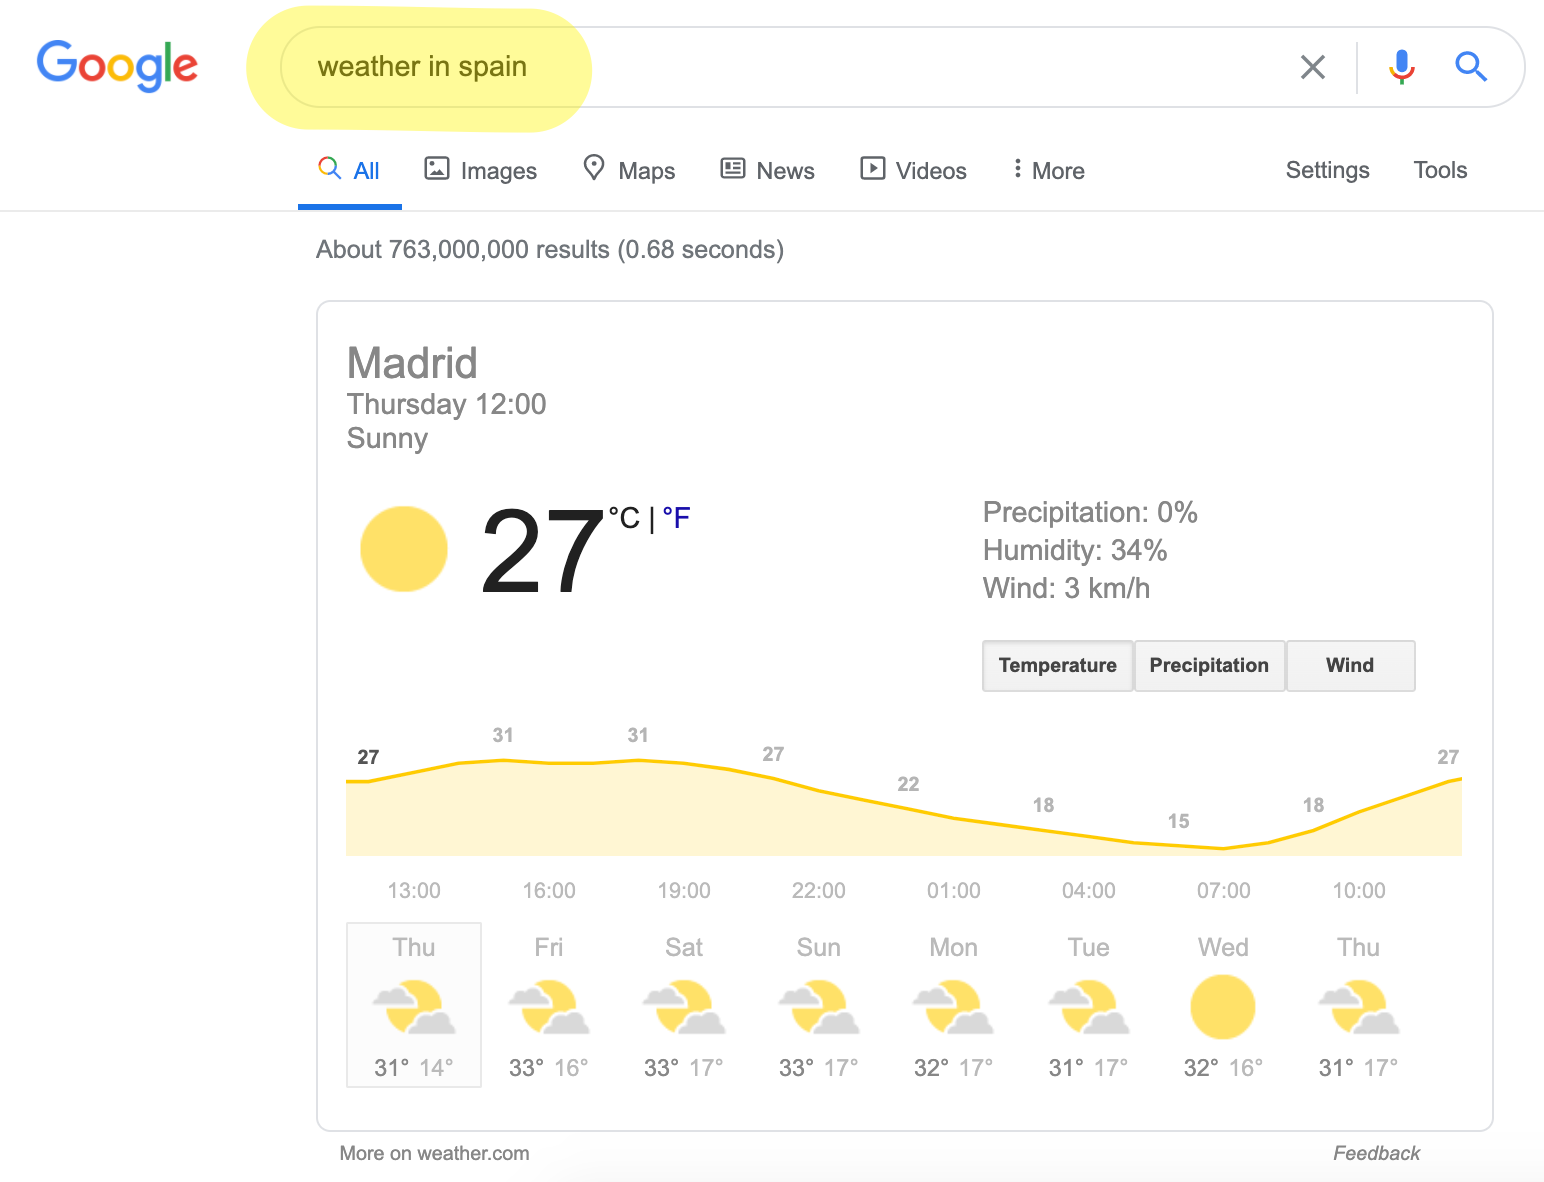 """Google direct answer to """"weather in spain"""""""